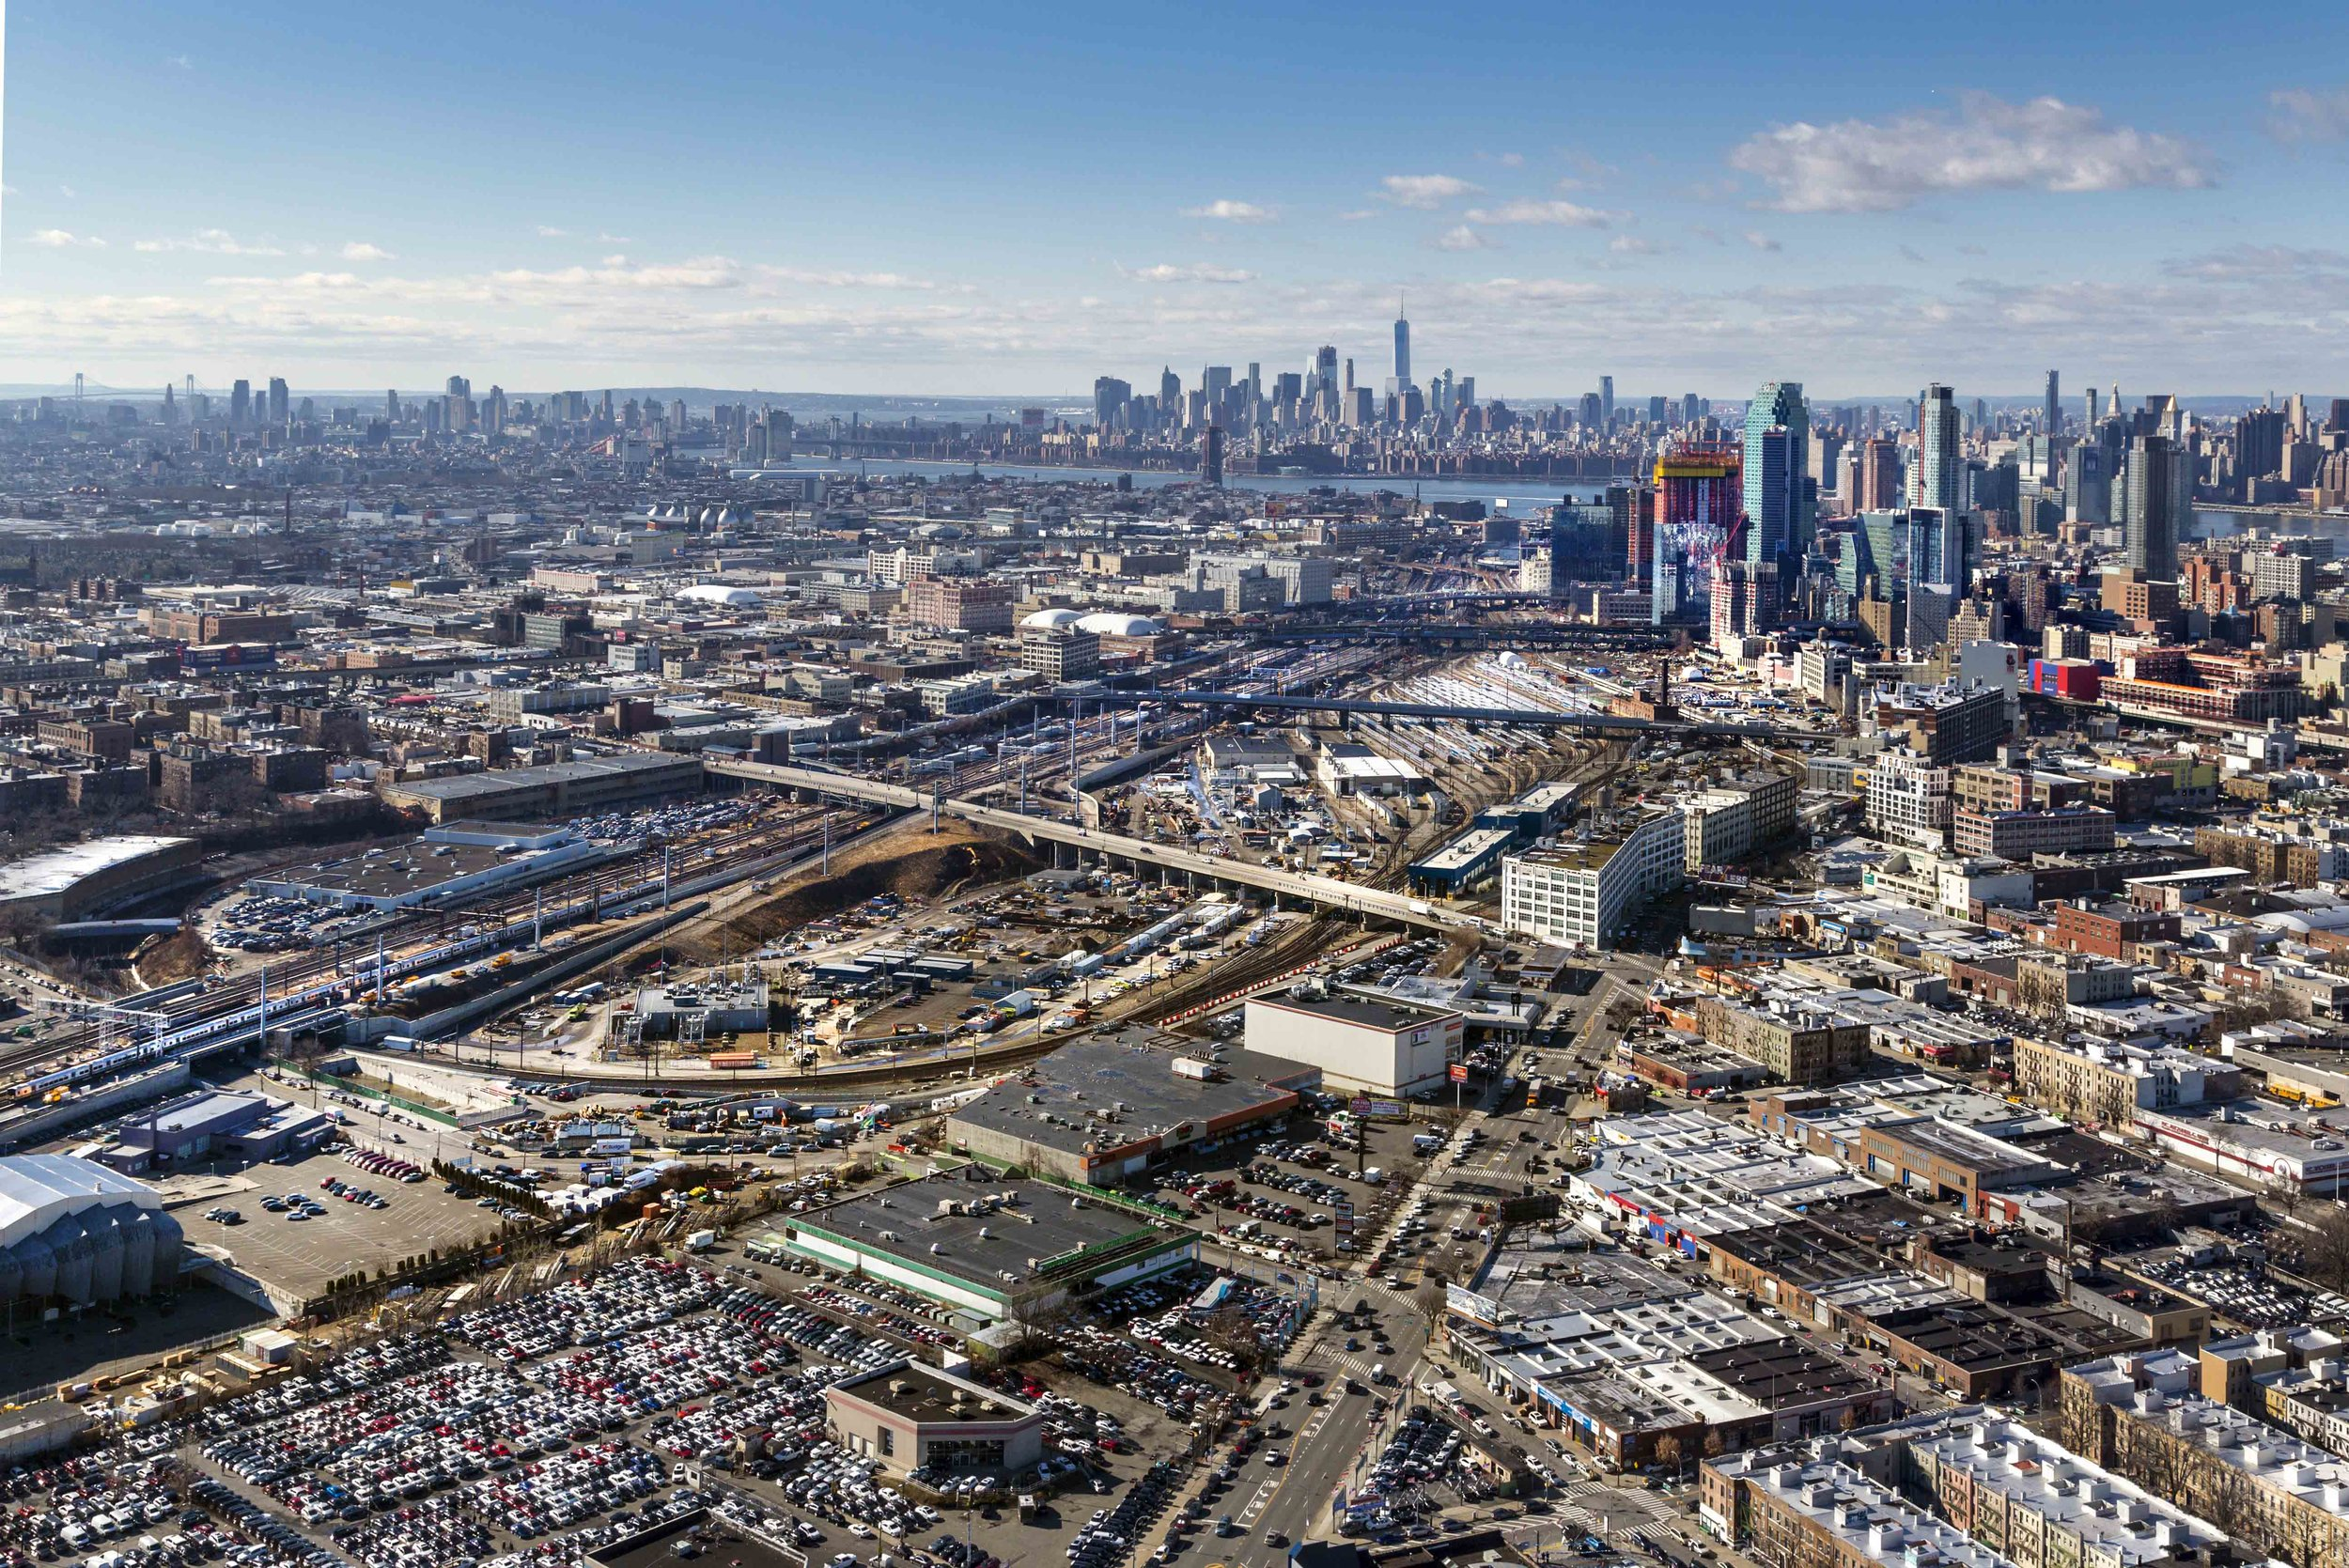 An aerial view of Sunnyside Yards. Photo via the NYCEDC.